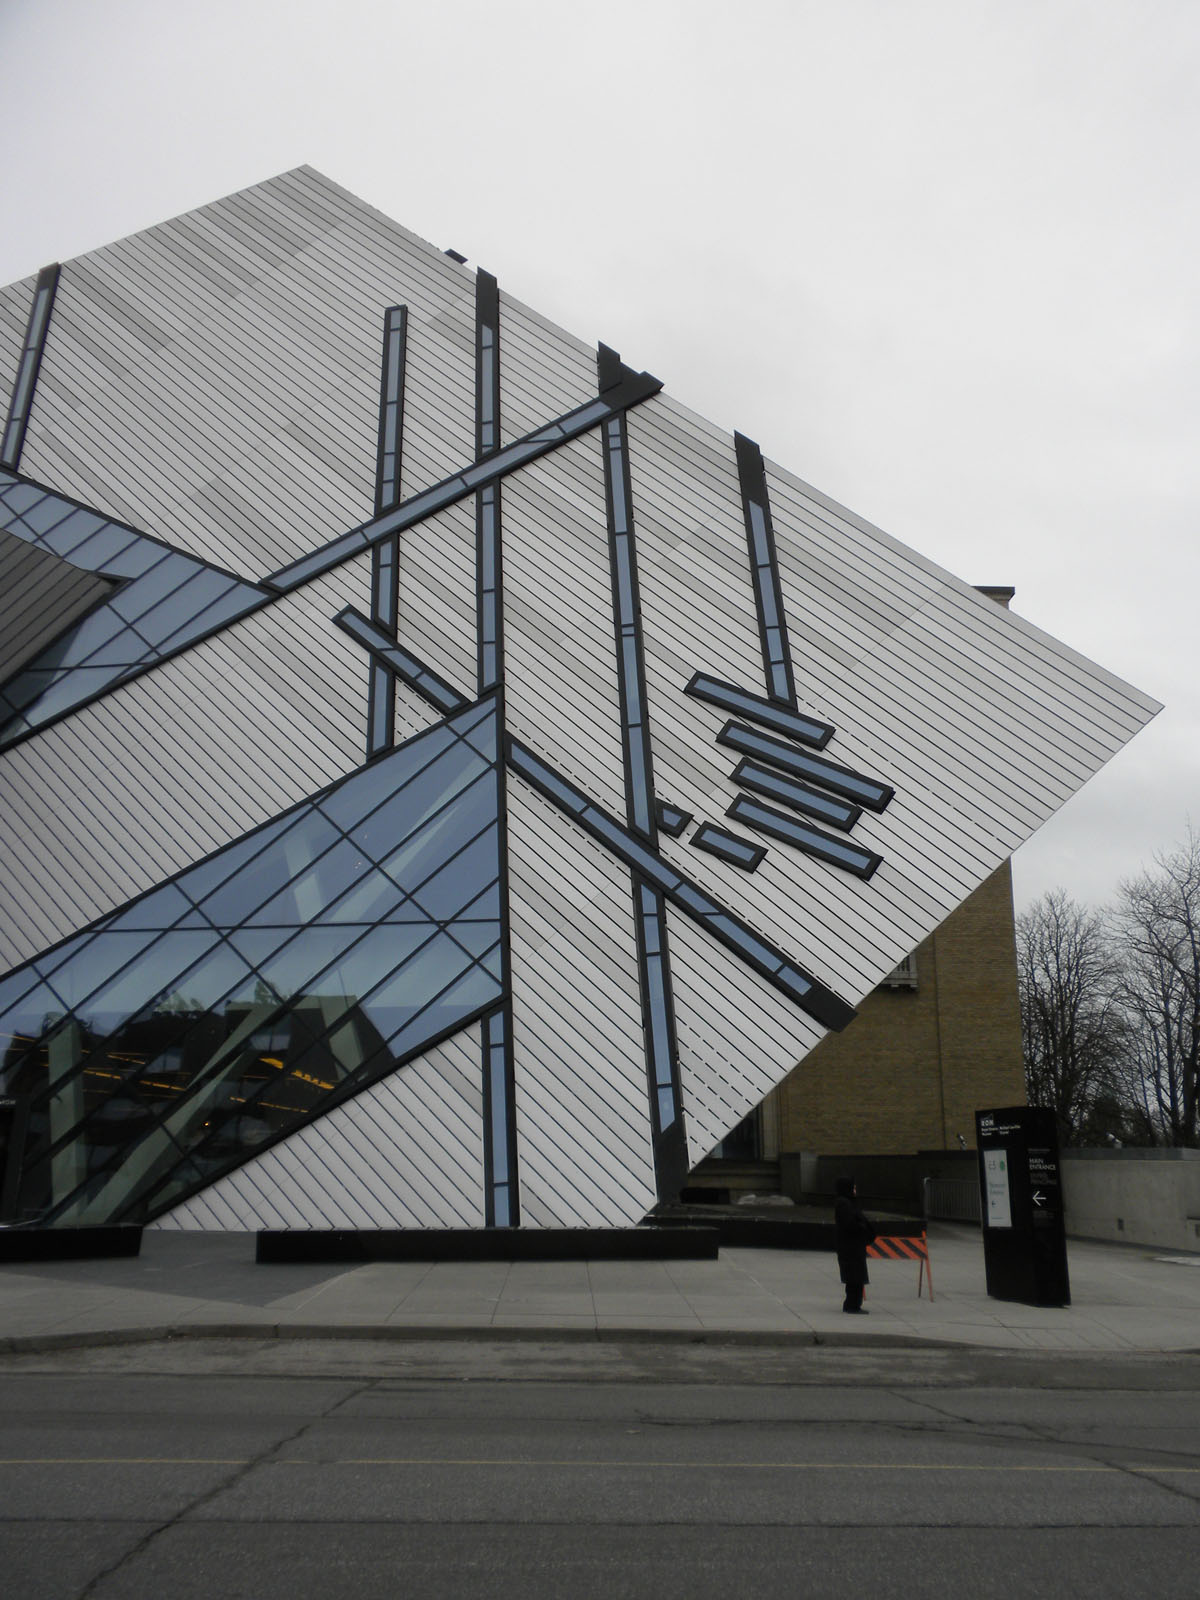 """I started my tour of cultural institutions with a visit to the <a href=""""http://www.rom.on.ca/"""">Royal Ontario Museum</a>, more commonly known in Toronto as the ROM. The new Michael Lee-Chin Crystal was designed by <a href=""""http://www.daniel-libeskind.com/"""""""